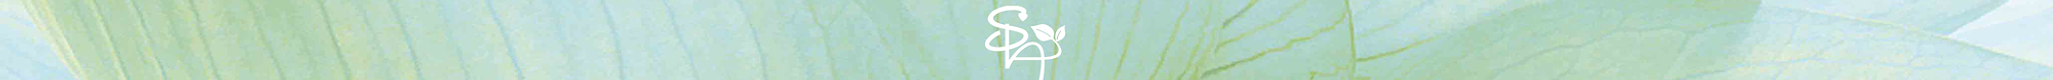 Banner Footer SPA website (1).png